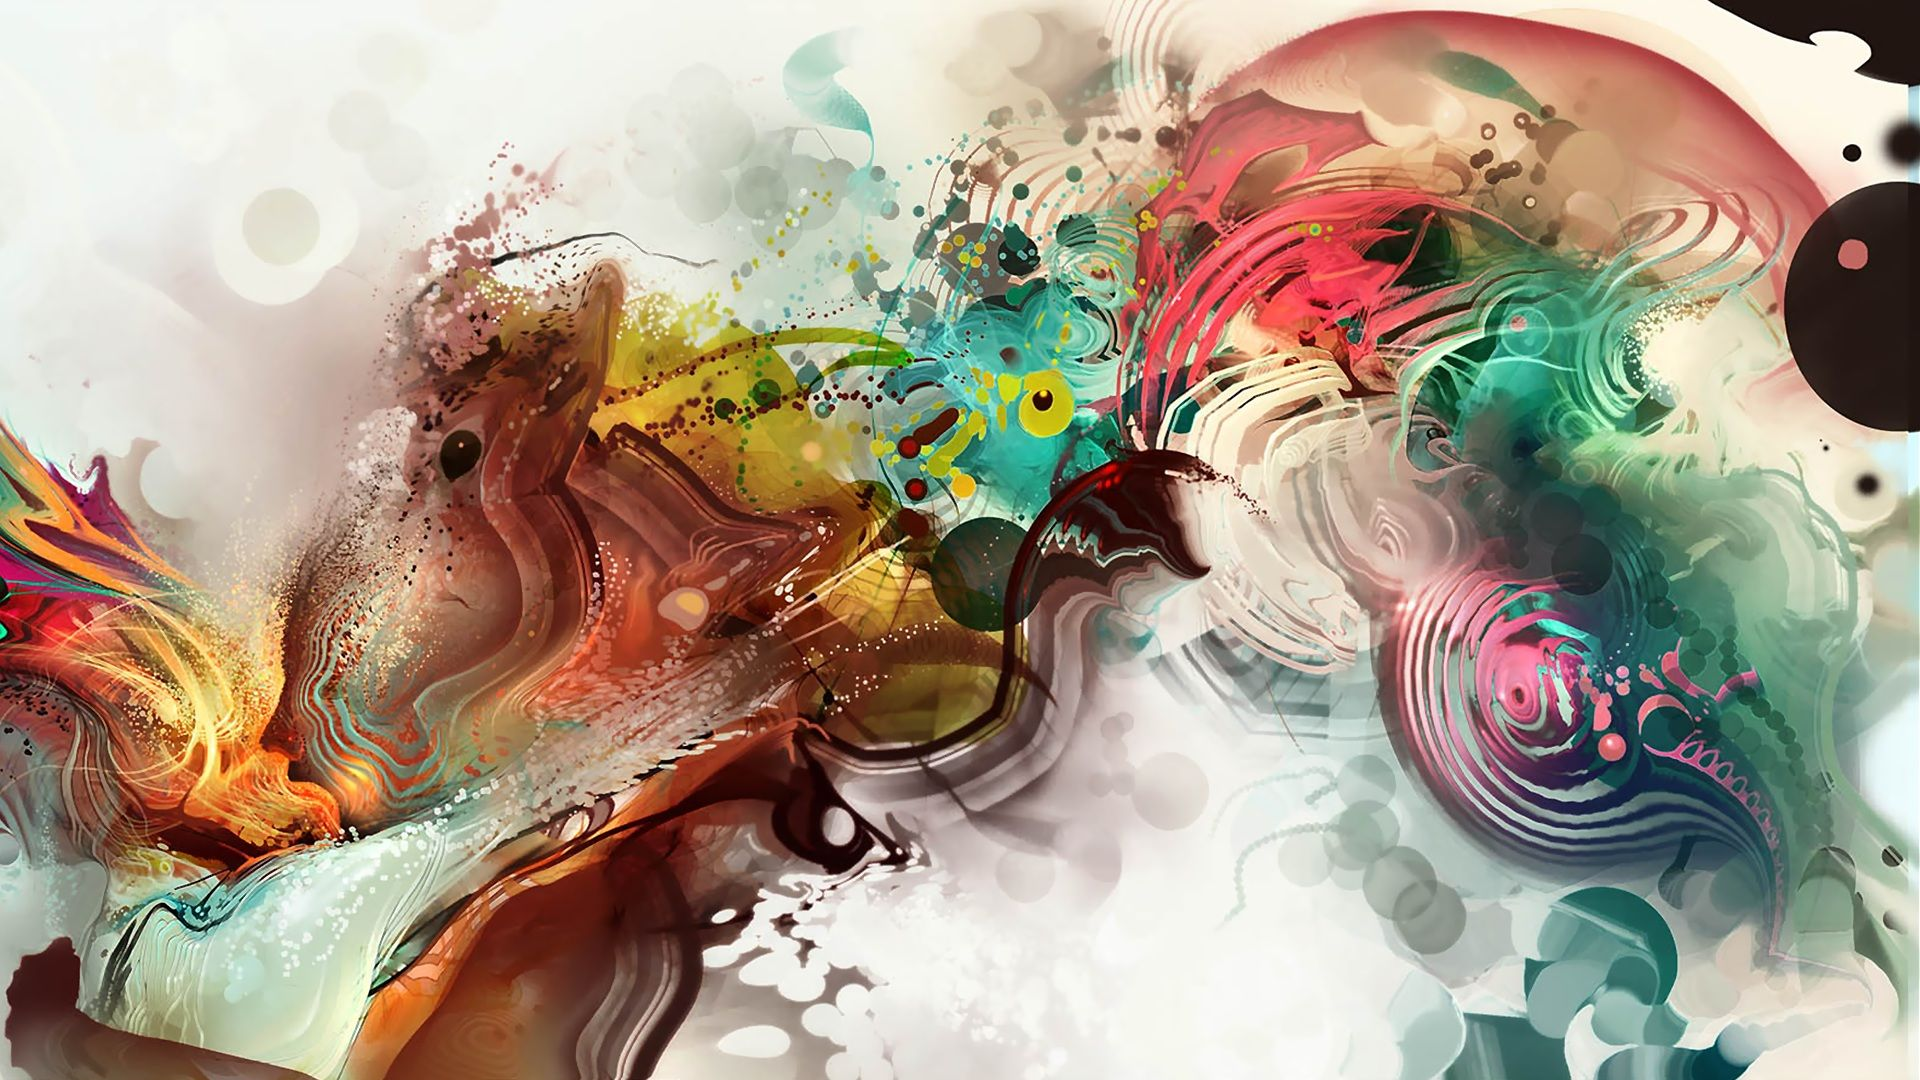 Artistic Abstract Wallpaper Full HD #m0d 1920x1080 px 592.78 KB Abstract abstract colorful ...